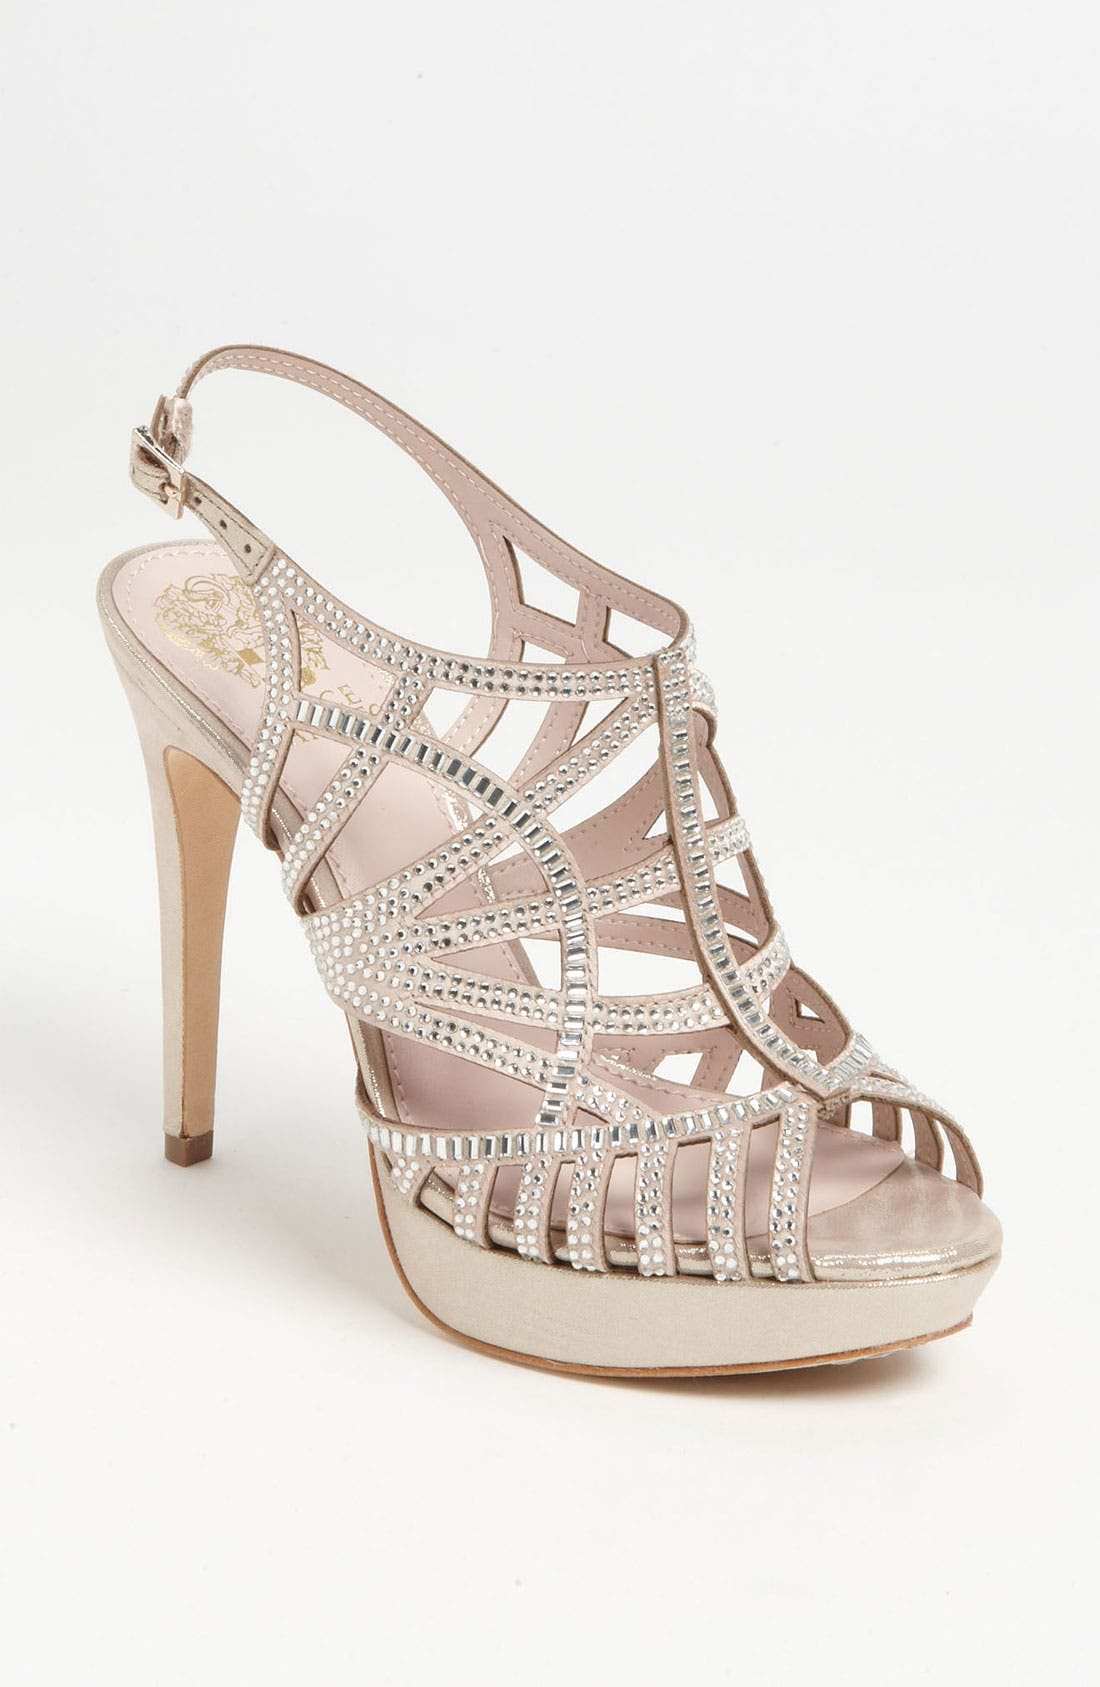 Alternate Image 1 Selected - Vince Camuto 'Janene' Sandal